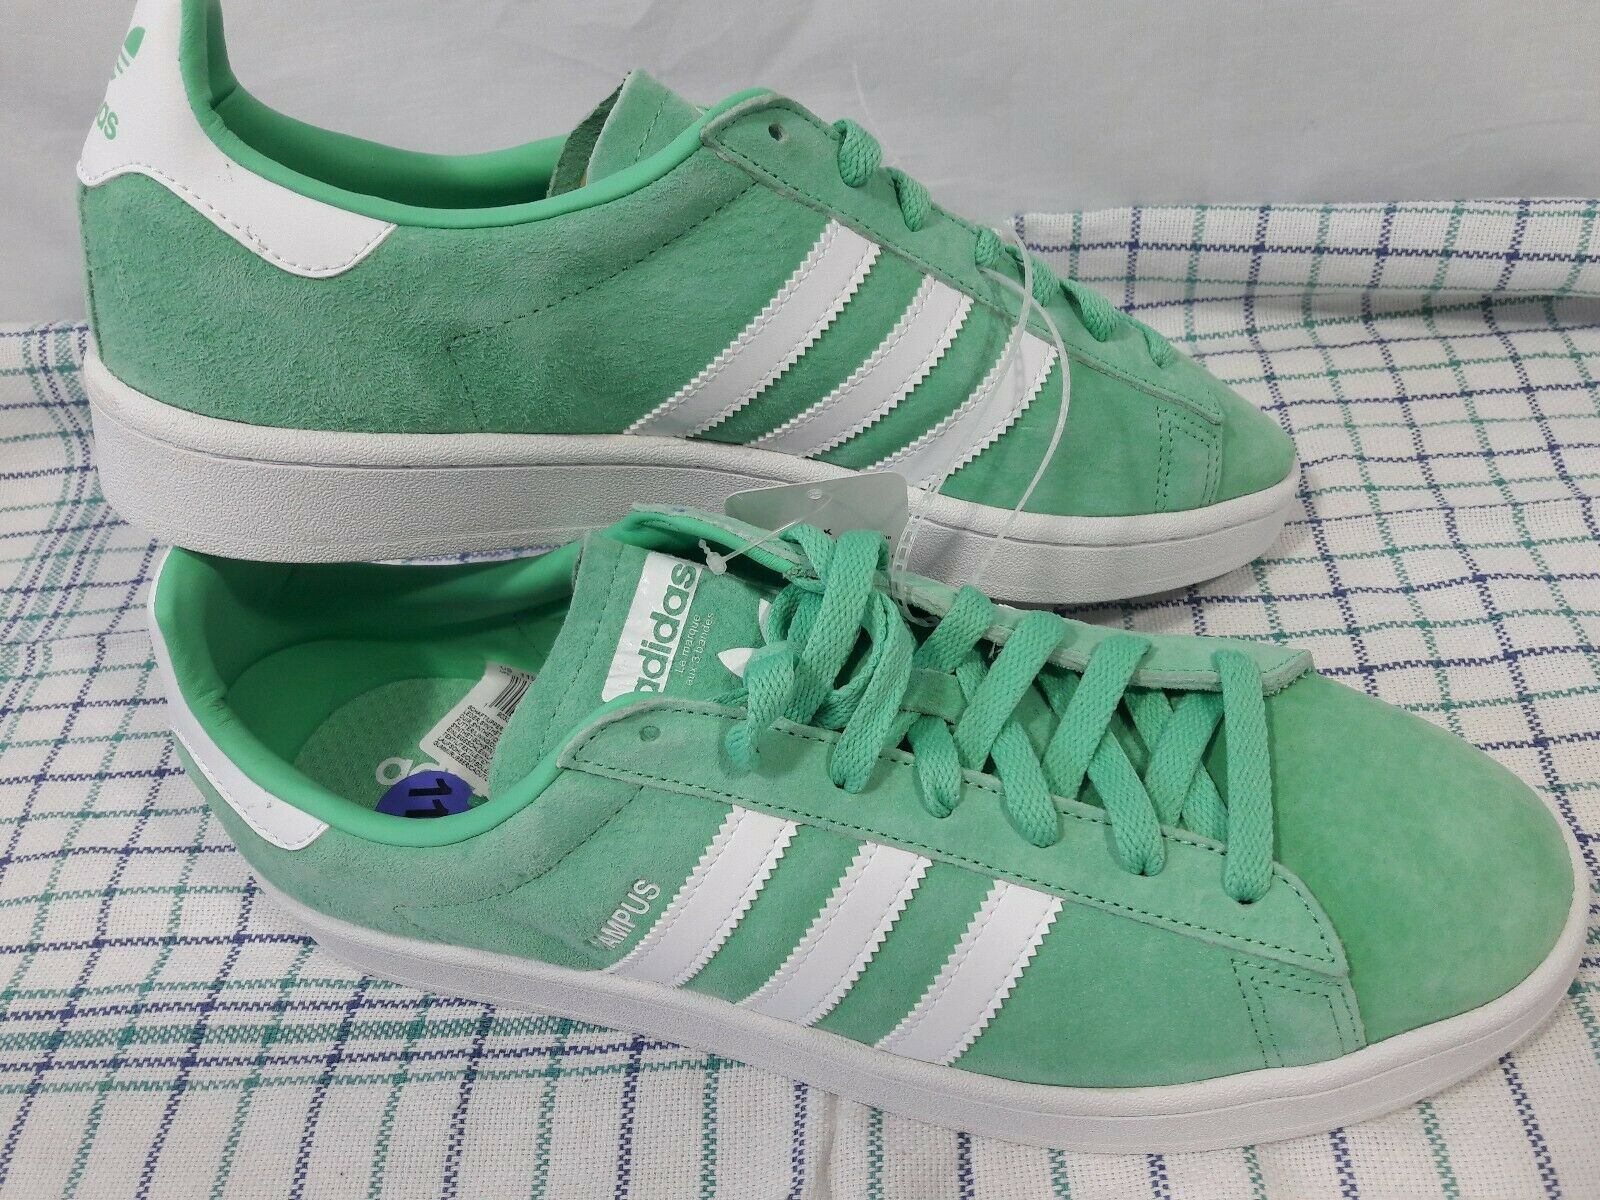 Adidas Men's Campus Green Glo and White Sneakers  BZ0076 Size 11.5